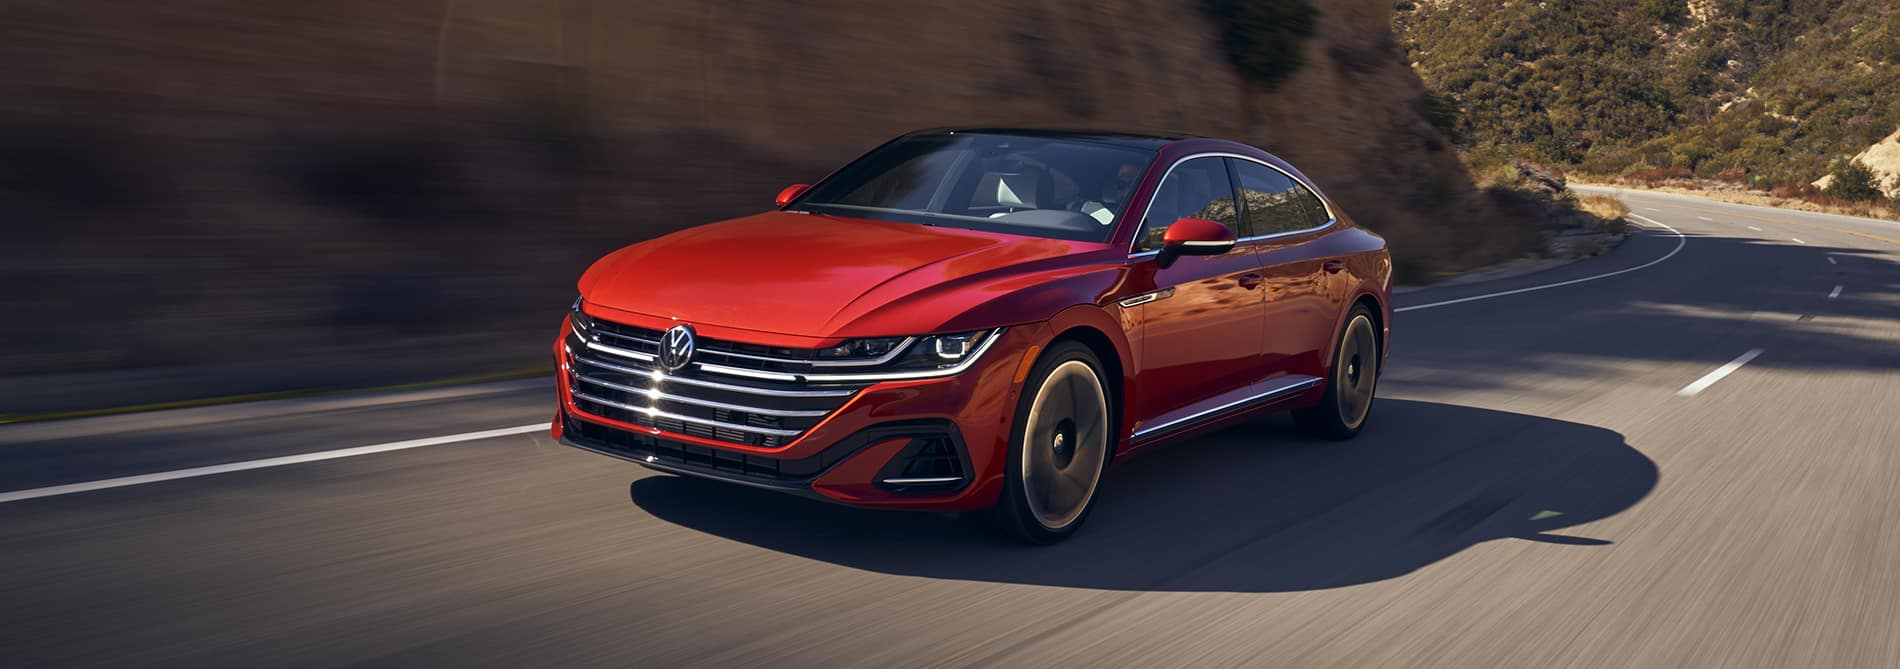 2021 Arteon coming to Timmons Volkswagen of Long Beach